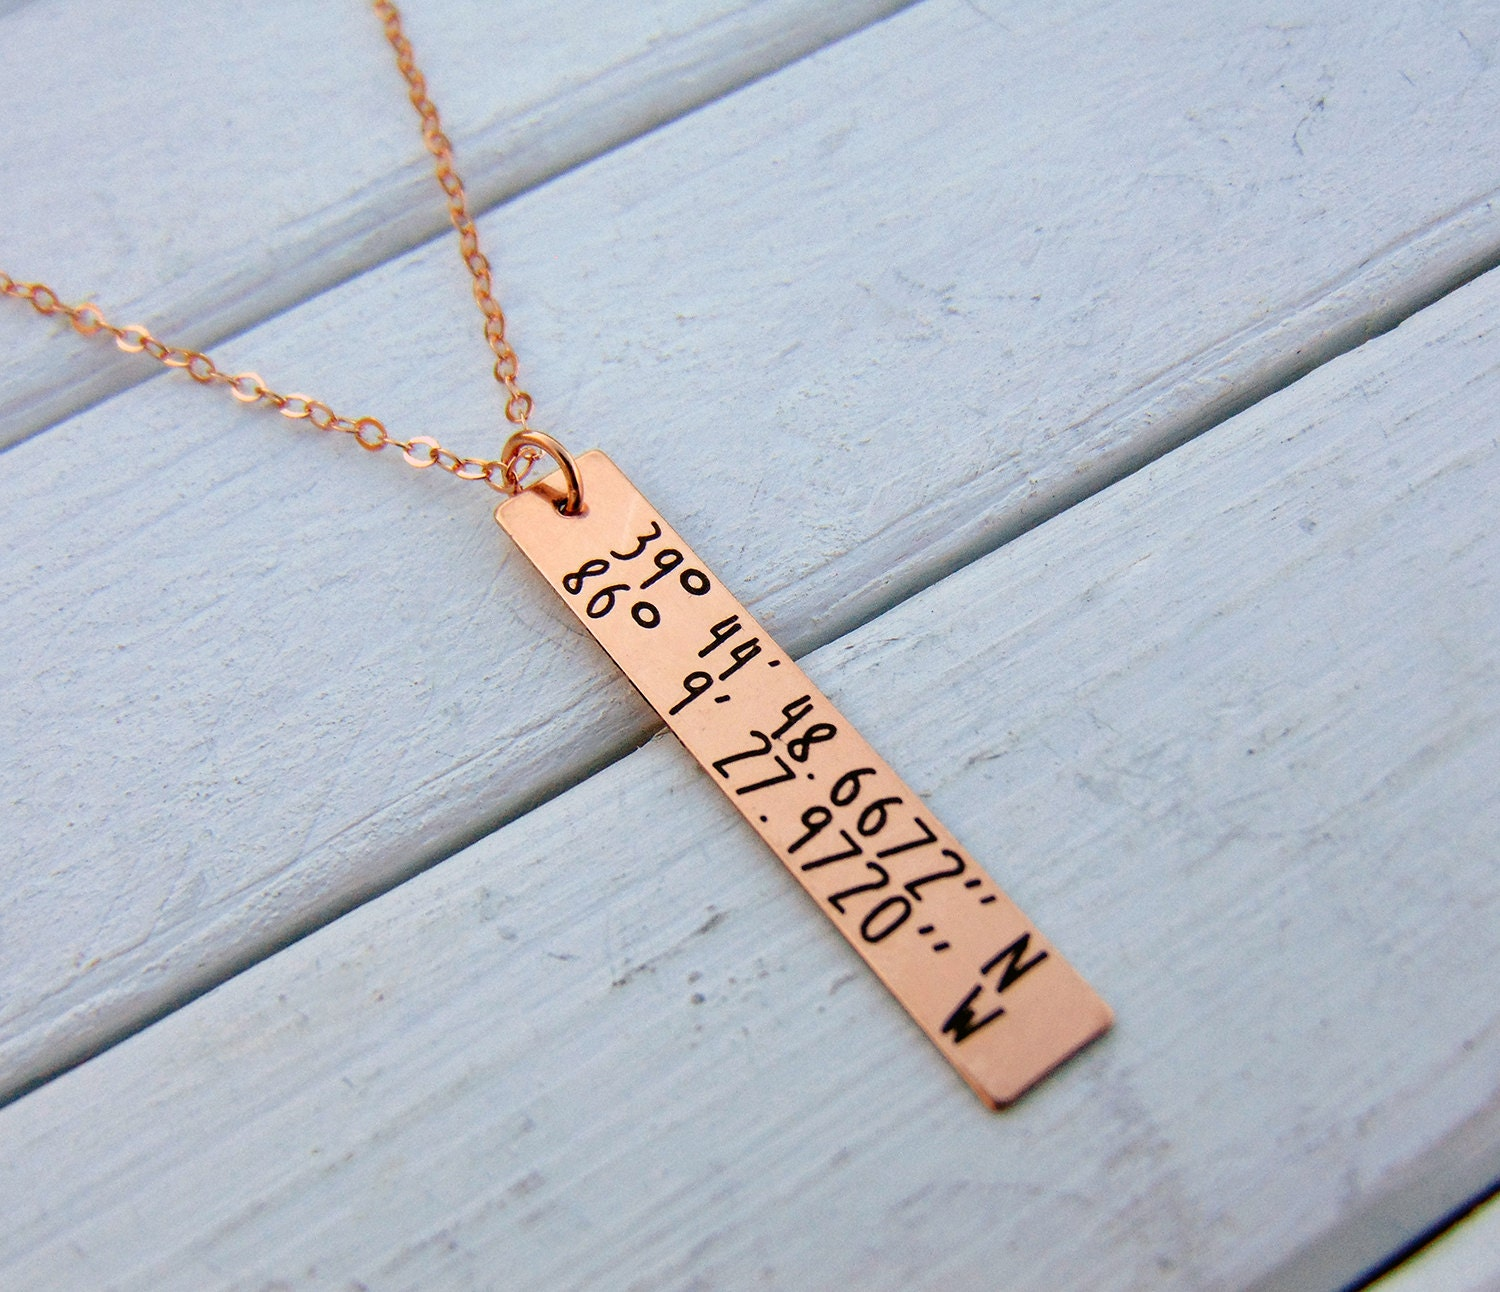 Gps Coordinates Necklace: GPS Coordinates Personalized Vertical Bar Necklace GoldRose